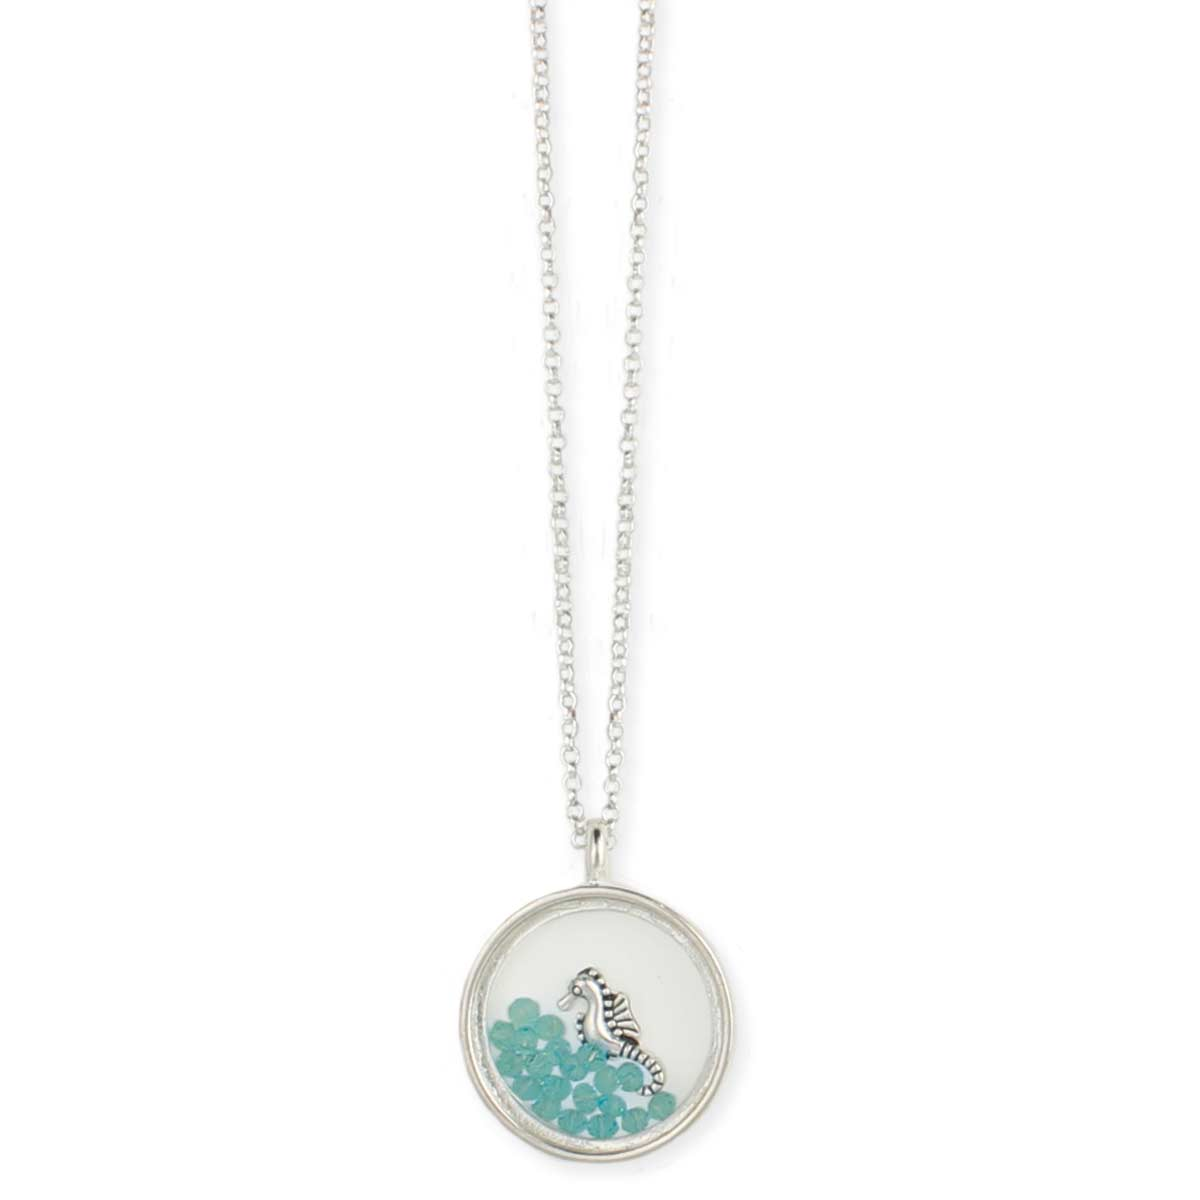 Turquoise Bead & Seahorse Floating Pendant Necklace